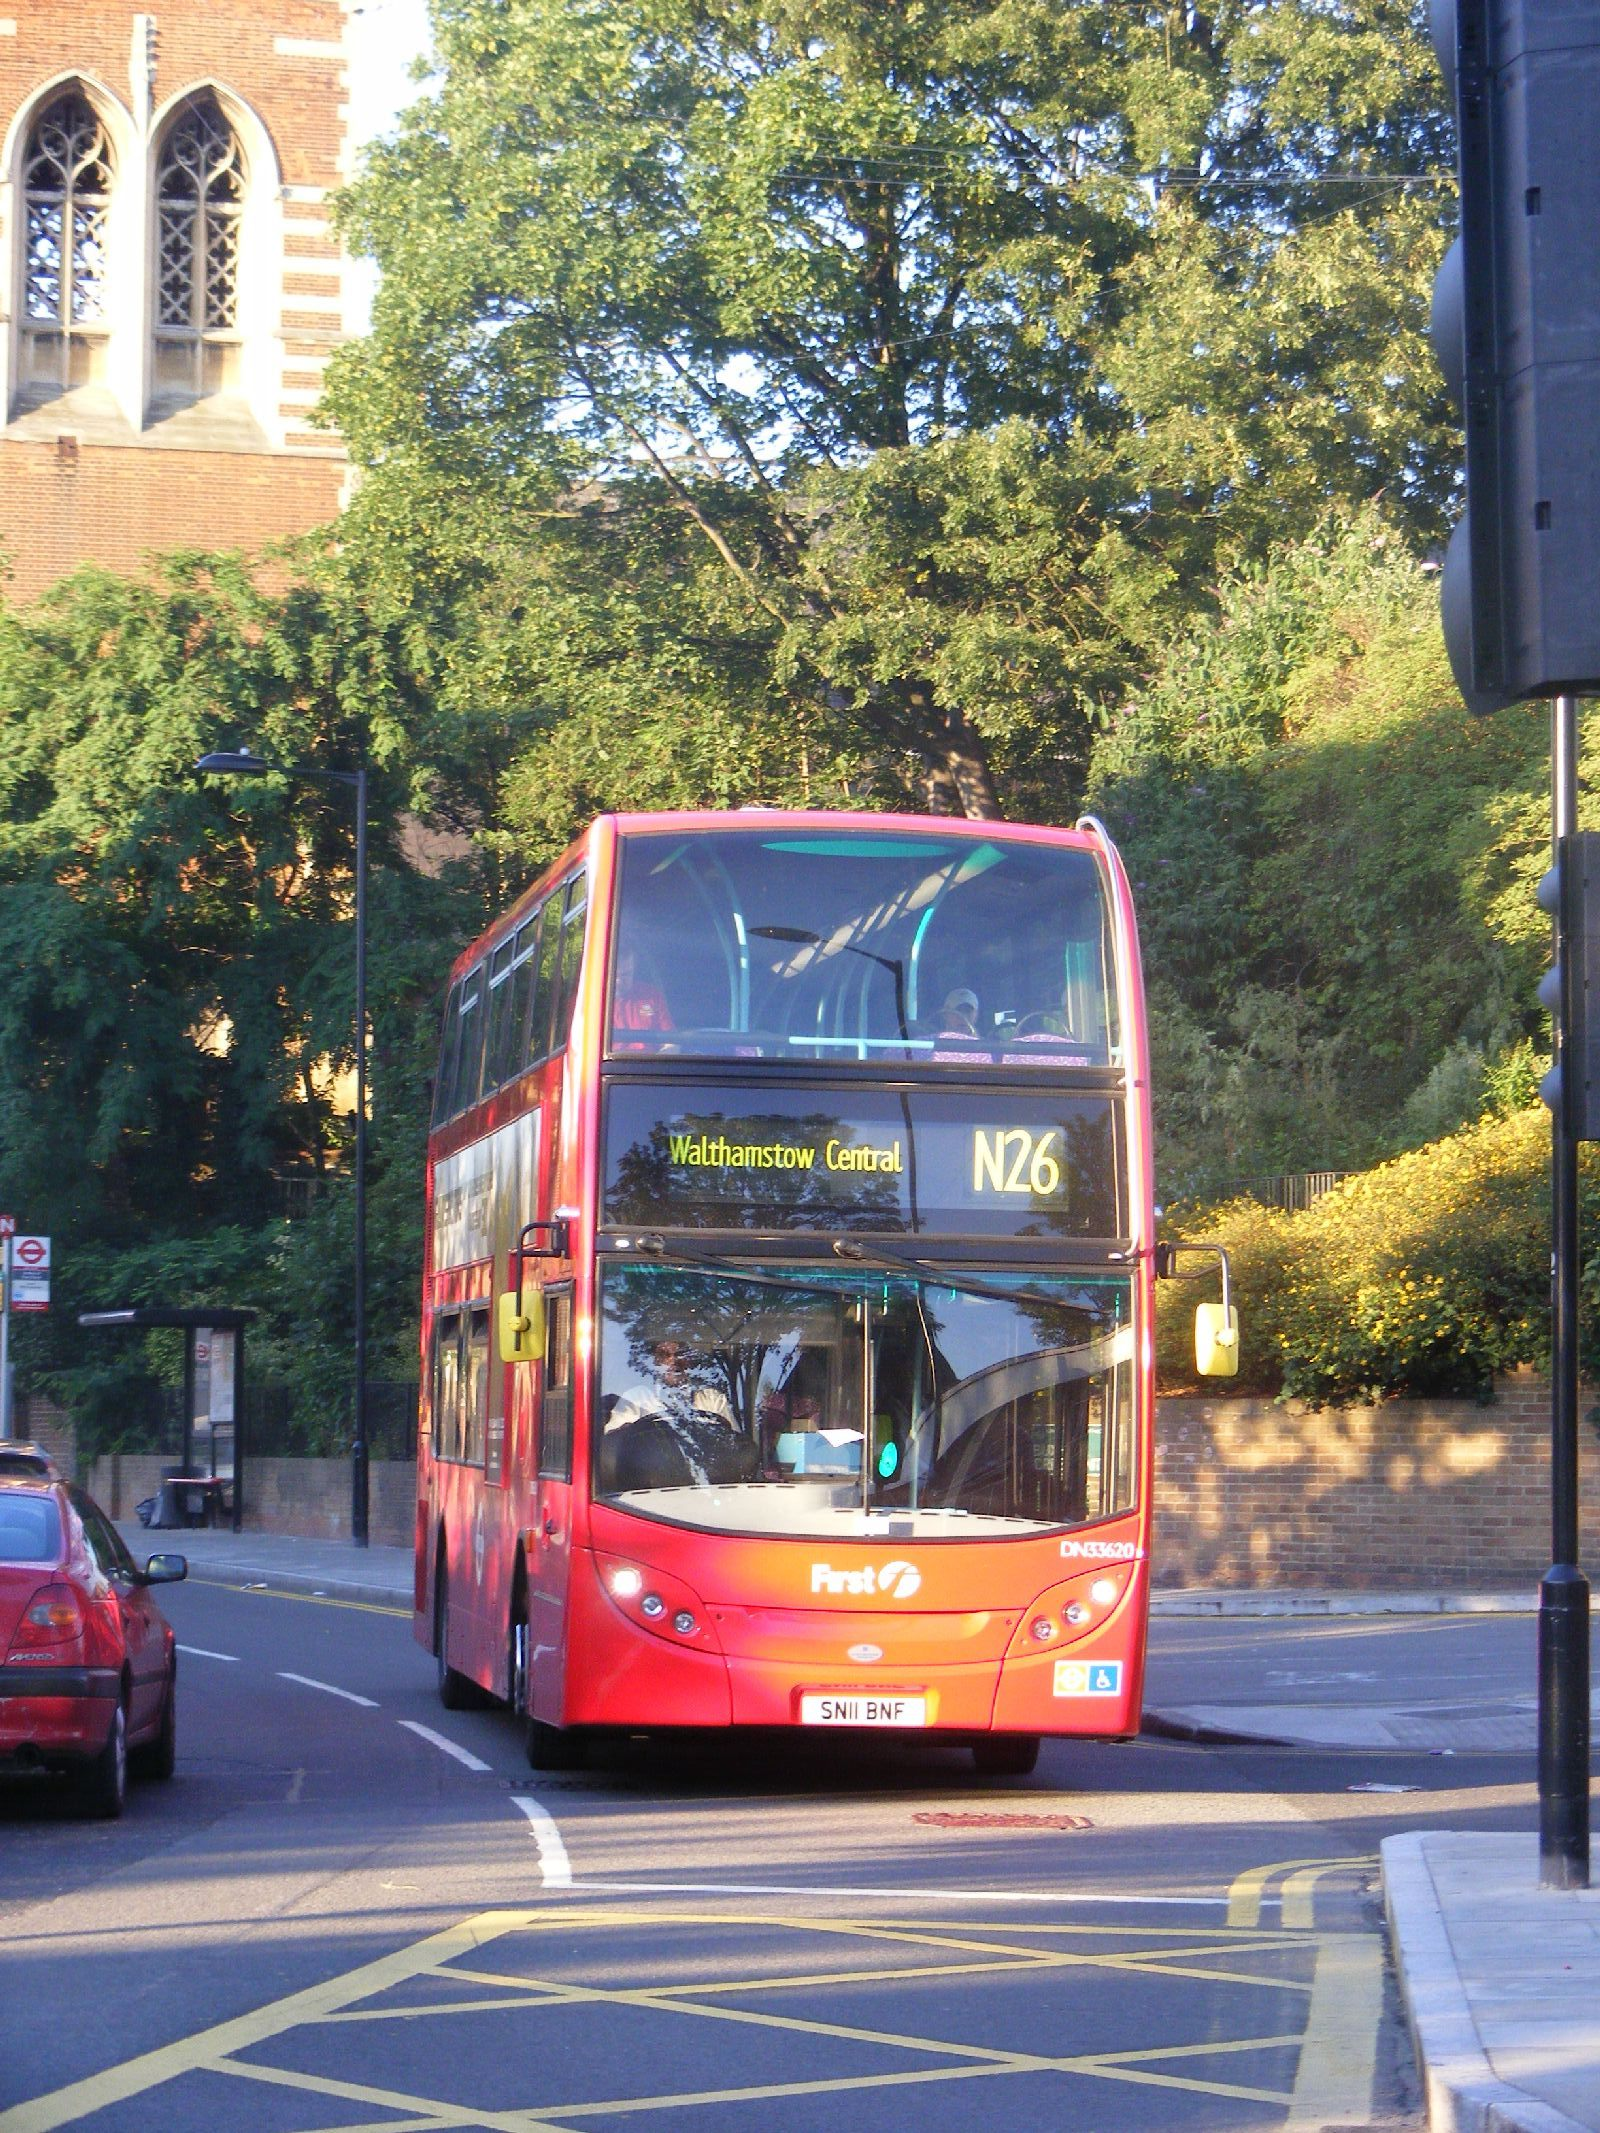 Lit Combiné 2 Couchages Élégant List Of Night Buses In London